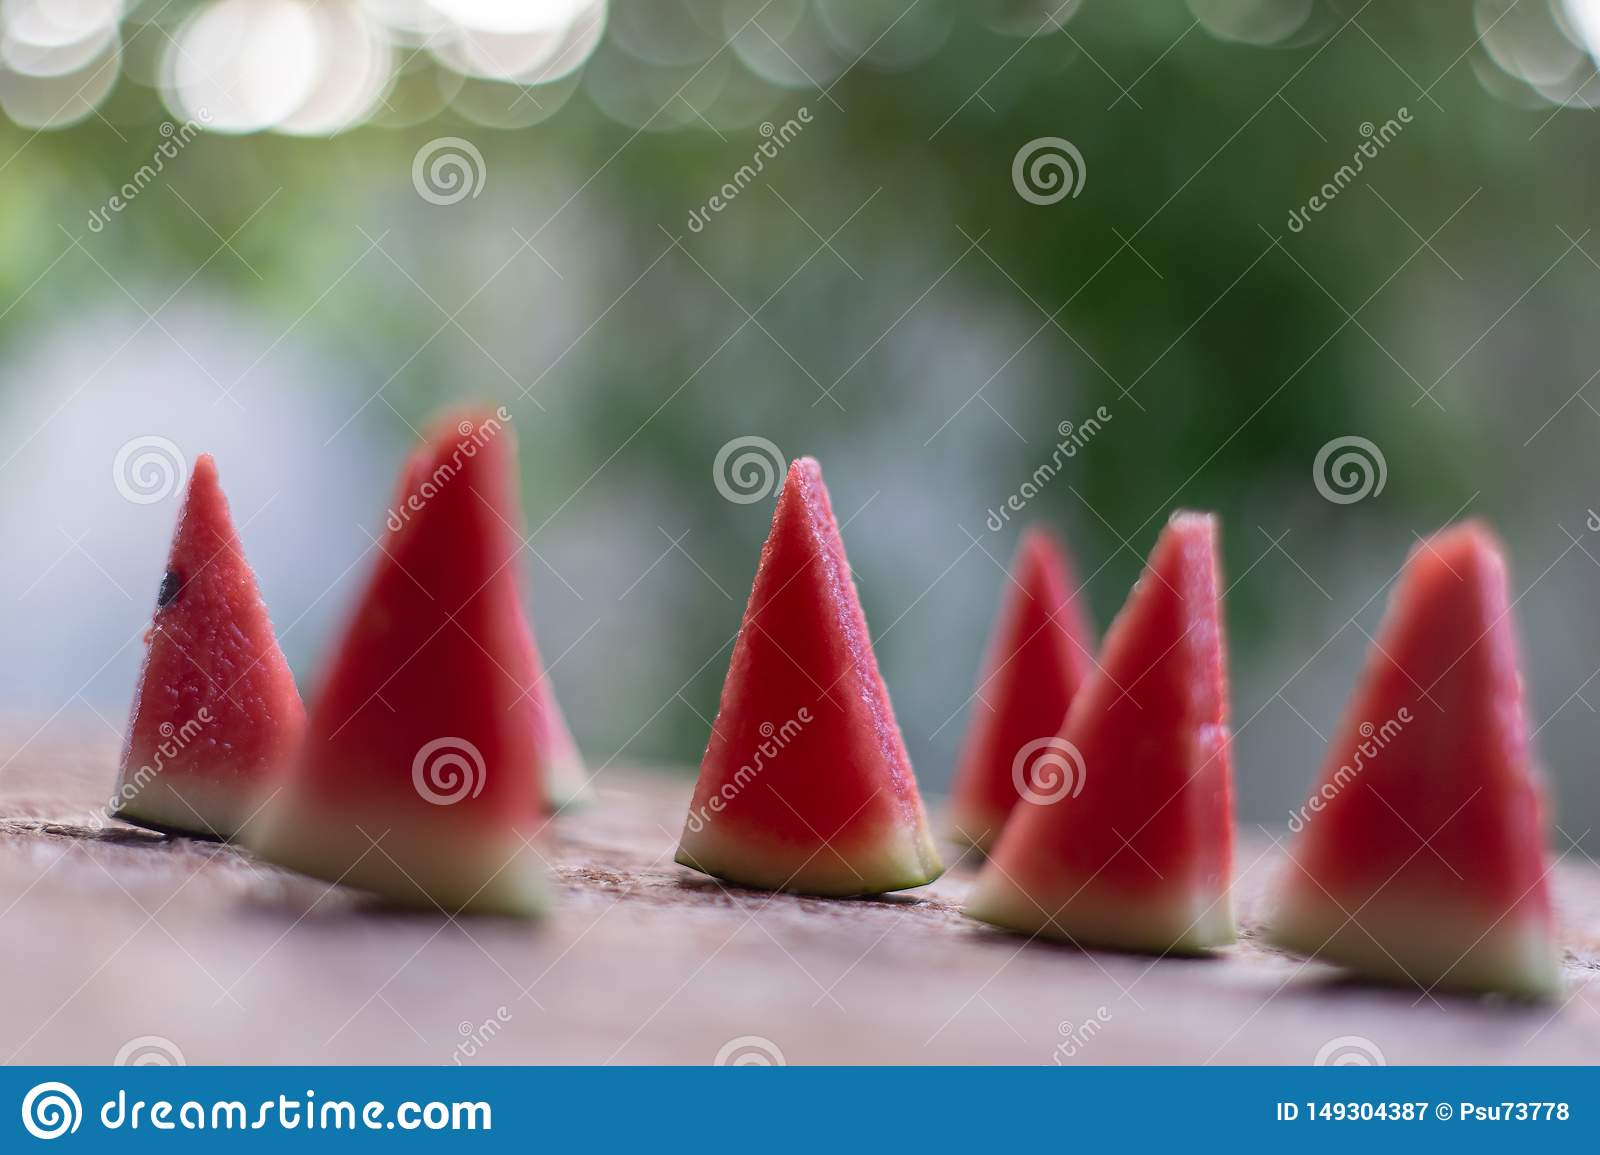 Watermelon trimmed in small red pieces